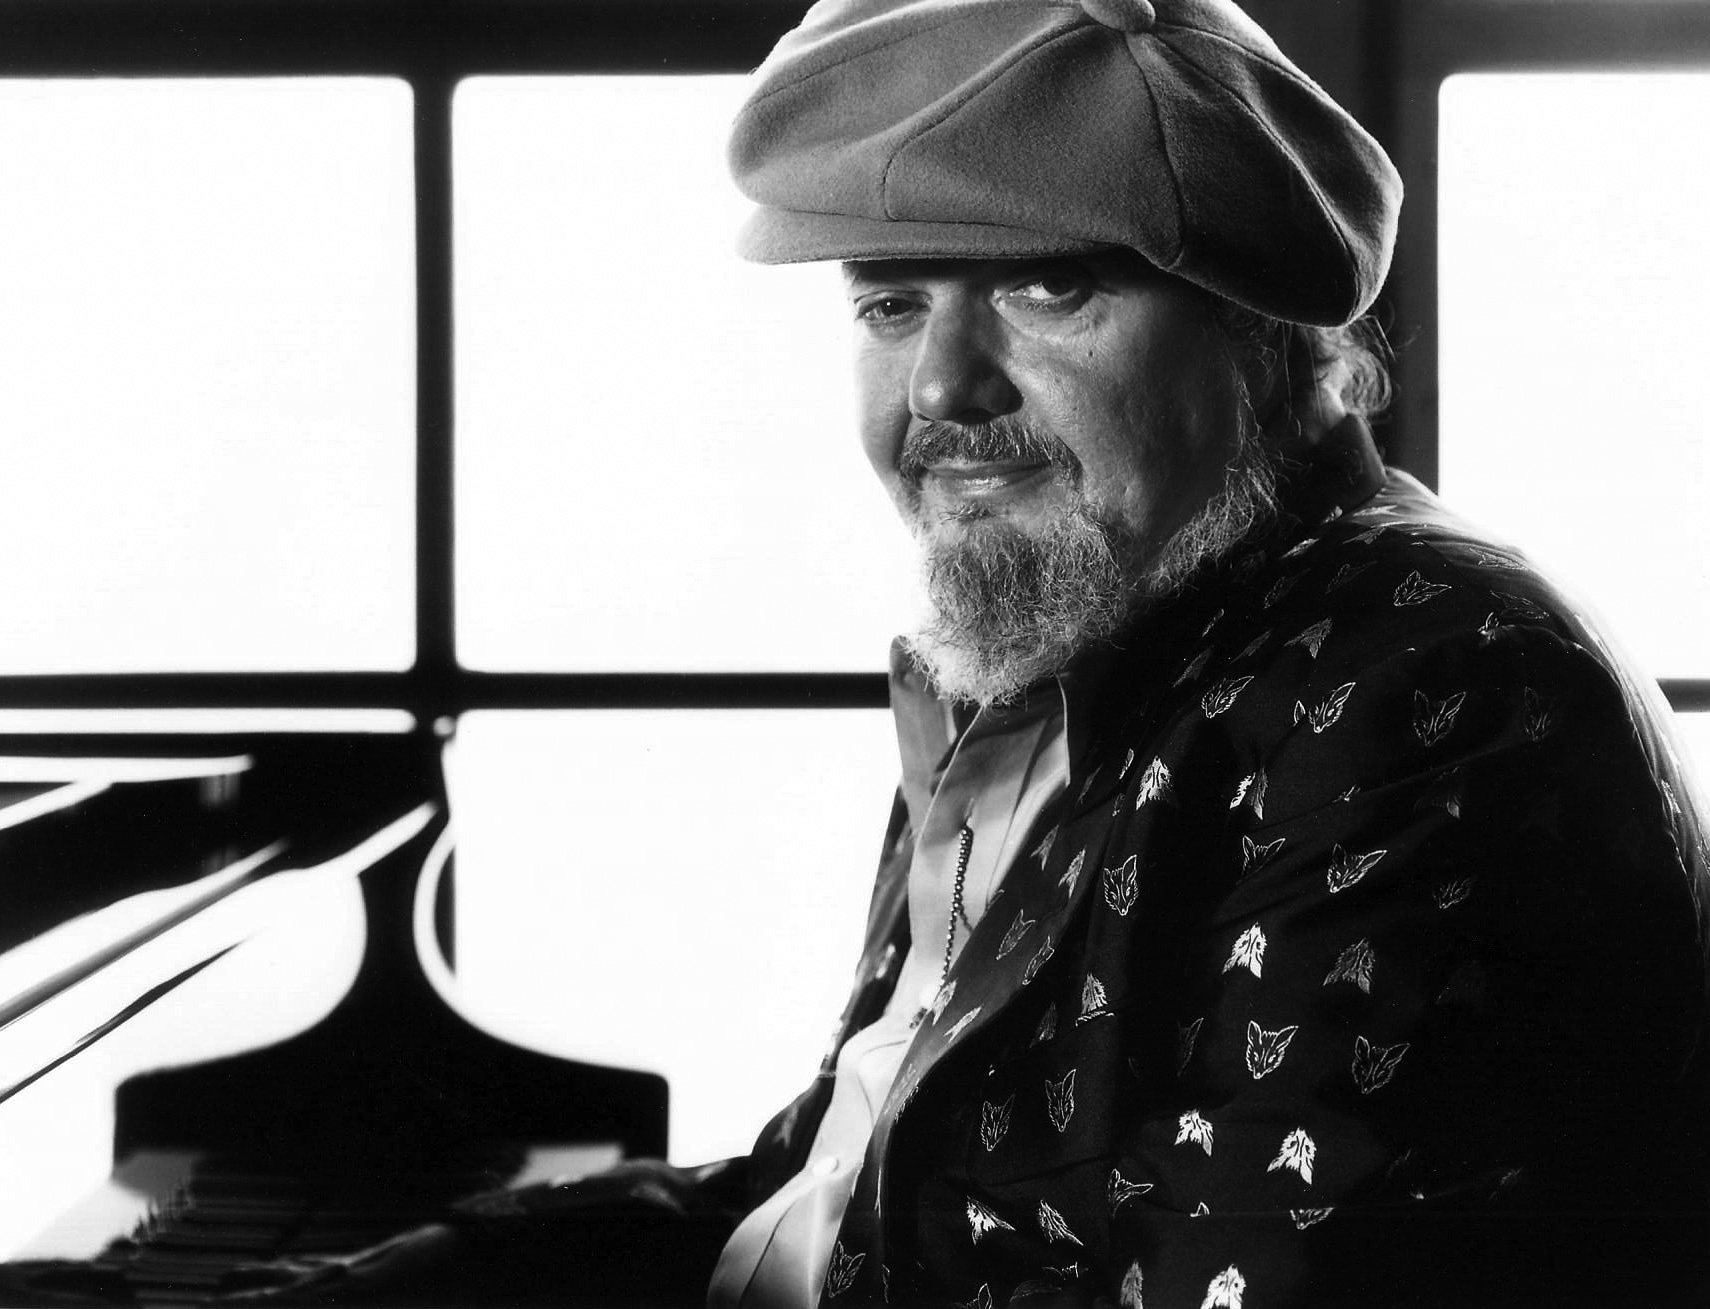 Dr. John (photo © 2004 Andy Earl)